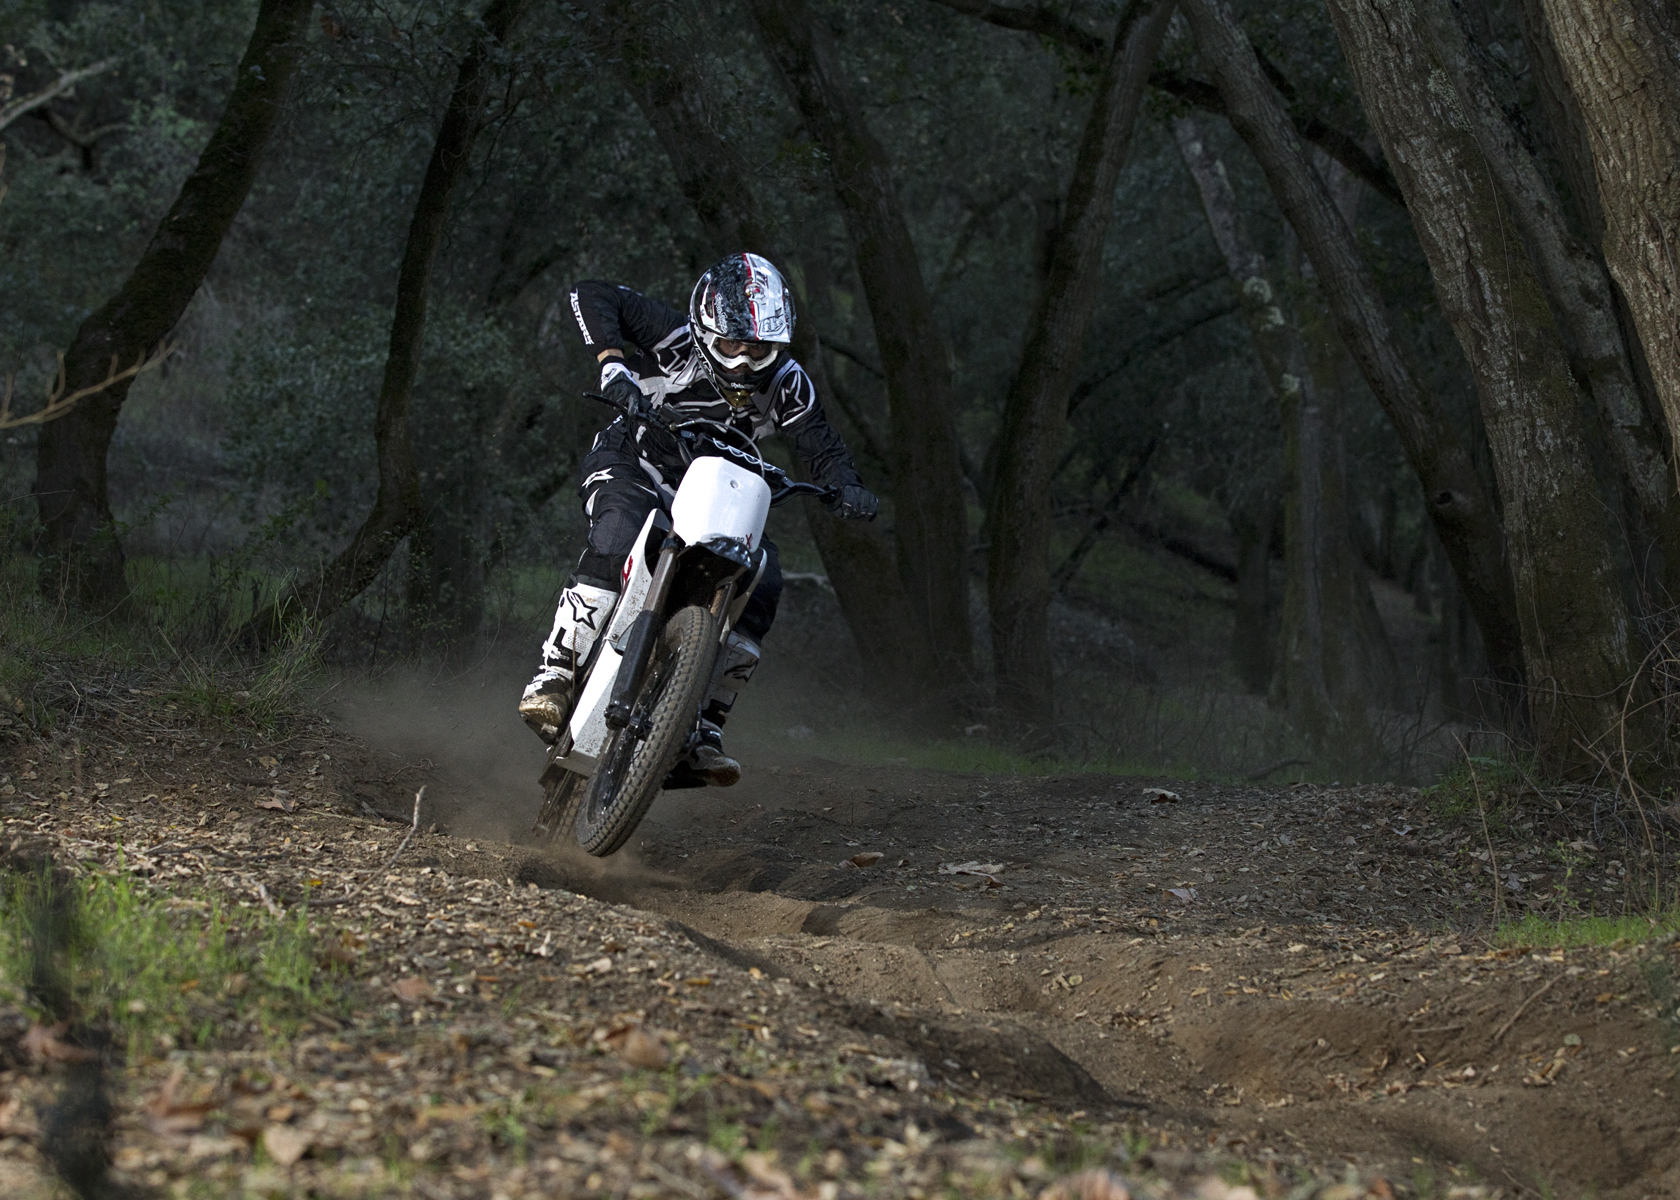 2011 Zero X Electric Motorcycle: Speeding through Ruts